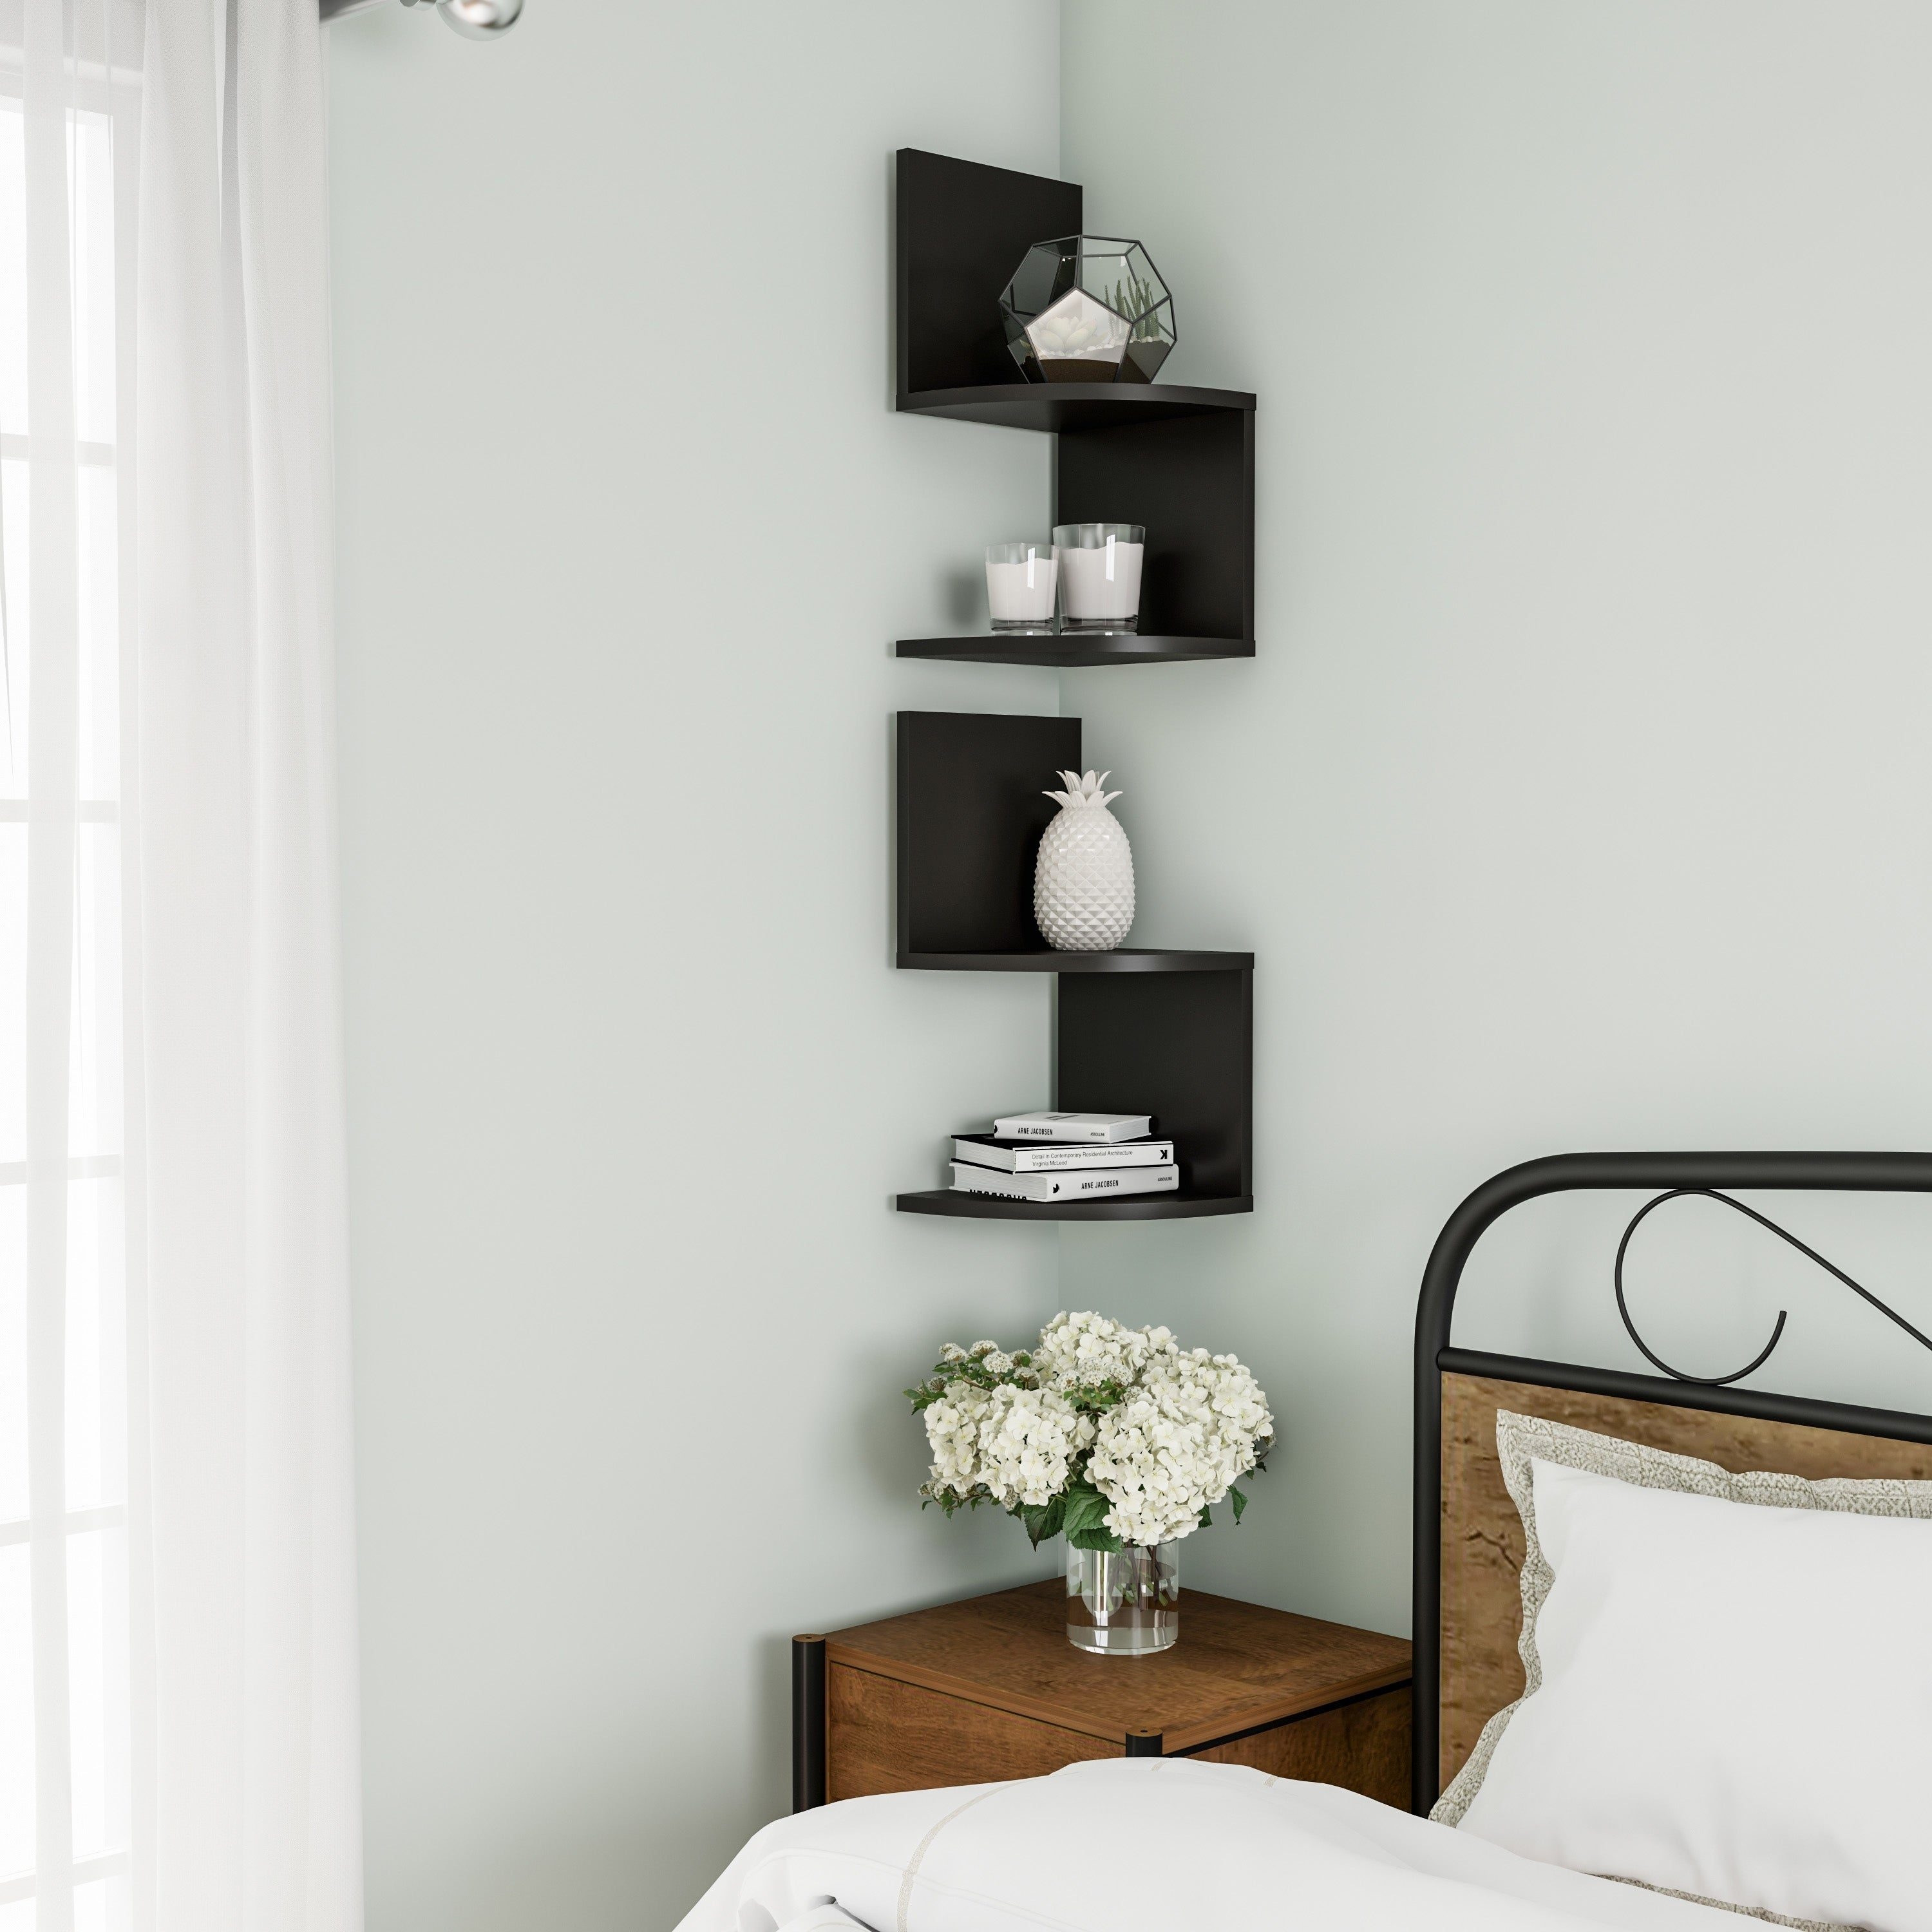 Floating Corner Shelf 2 Tier Wall Shelves With Hidden Brackets By Lavish Home Overstock 26459214 Black